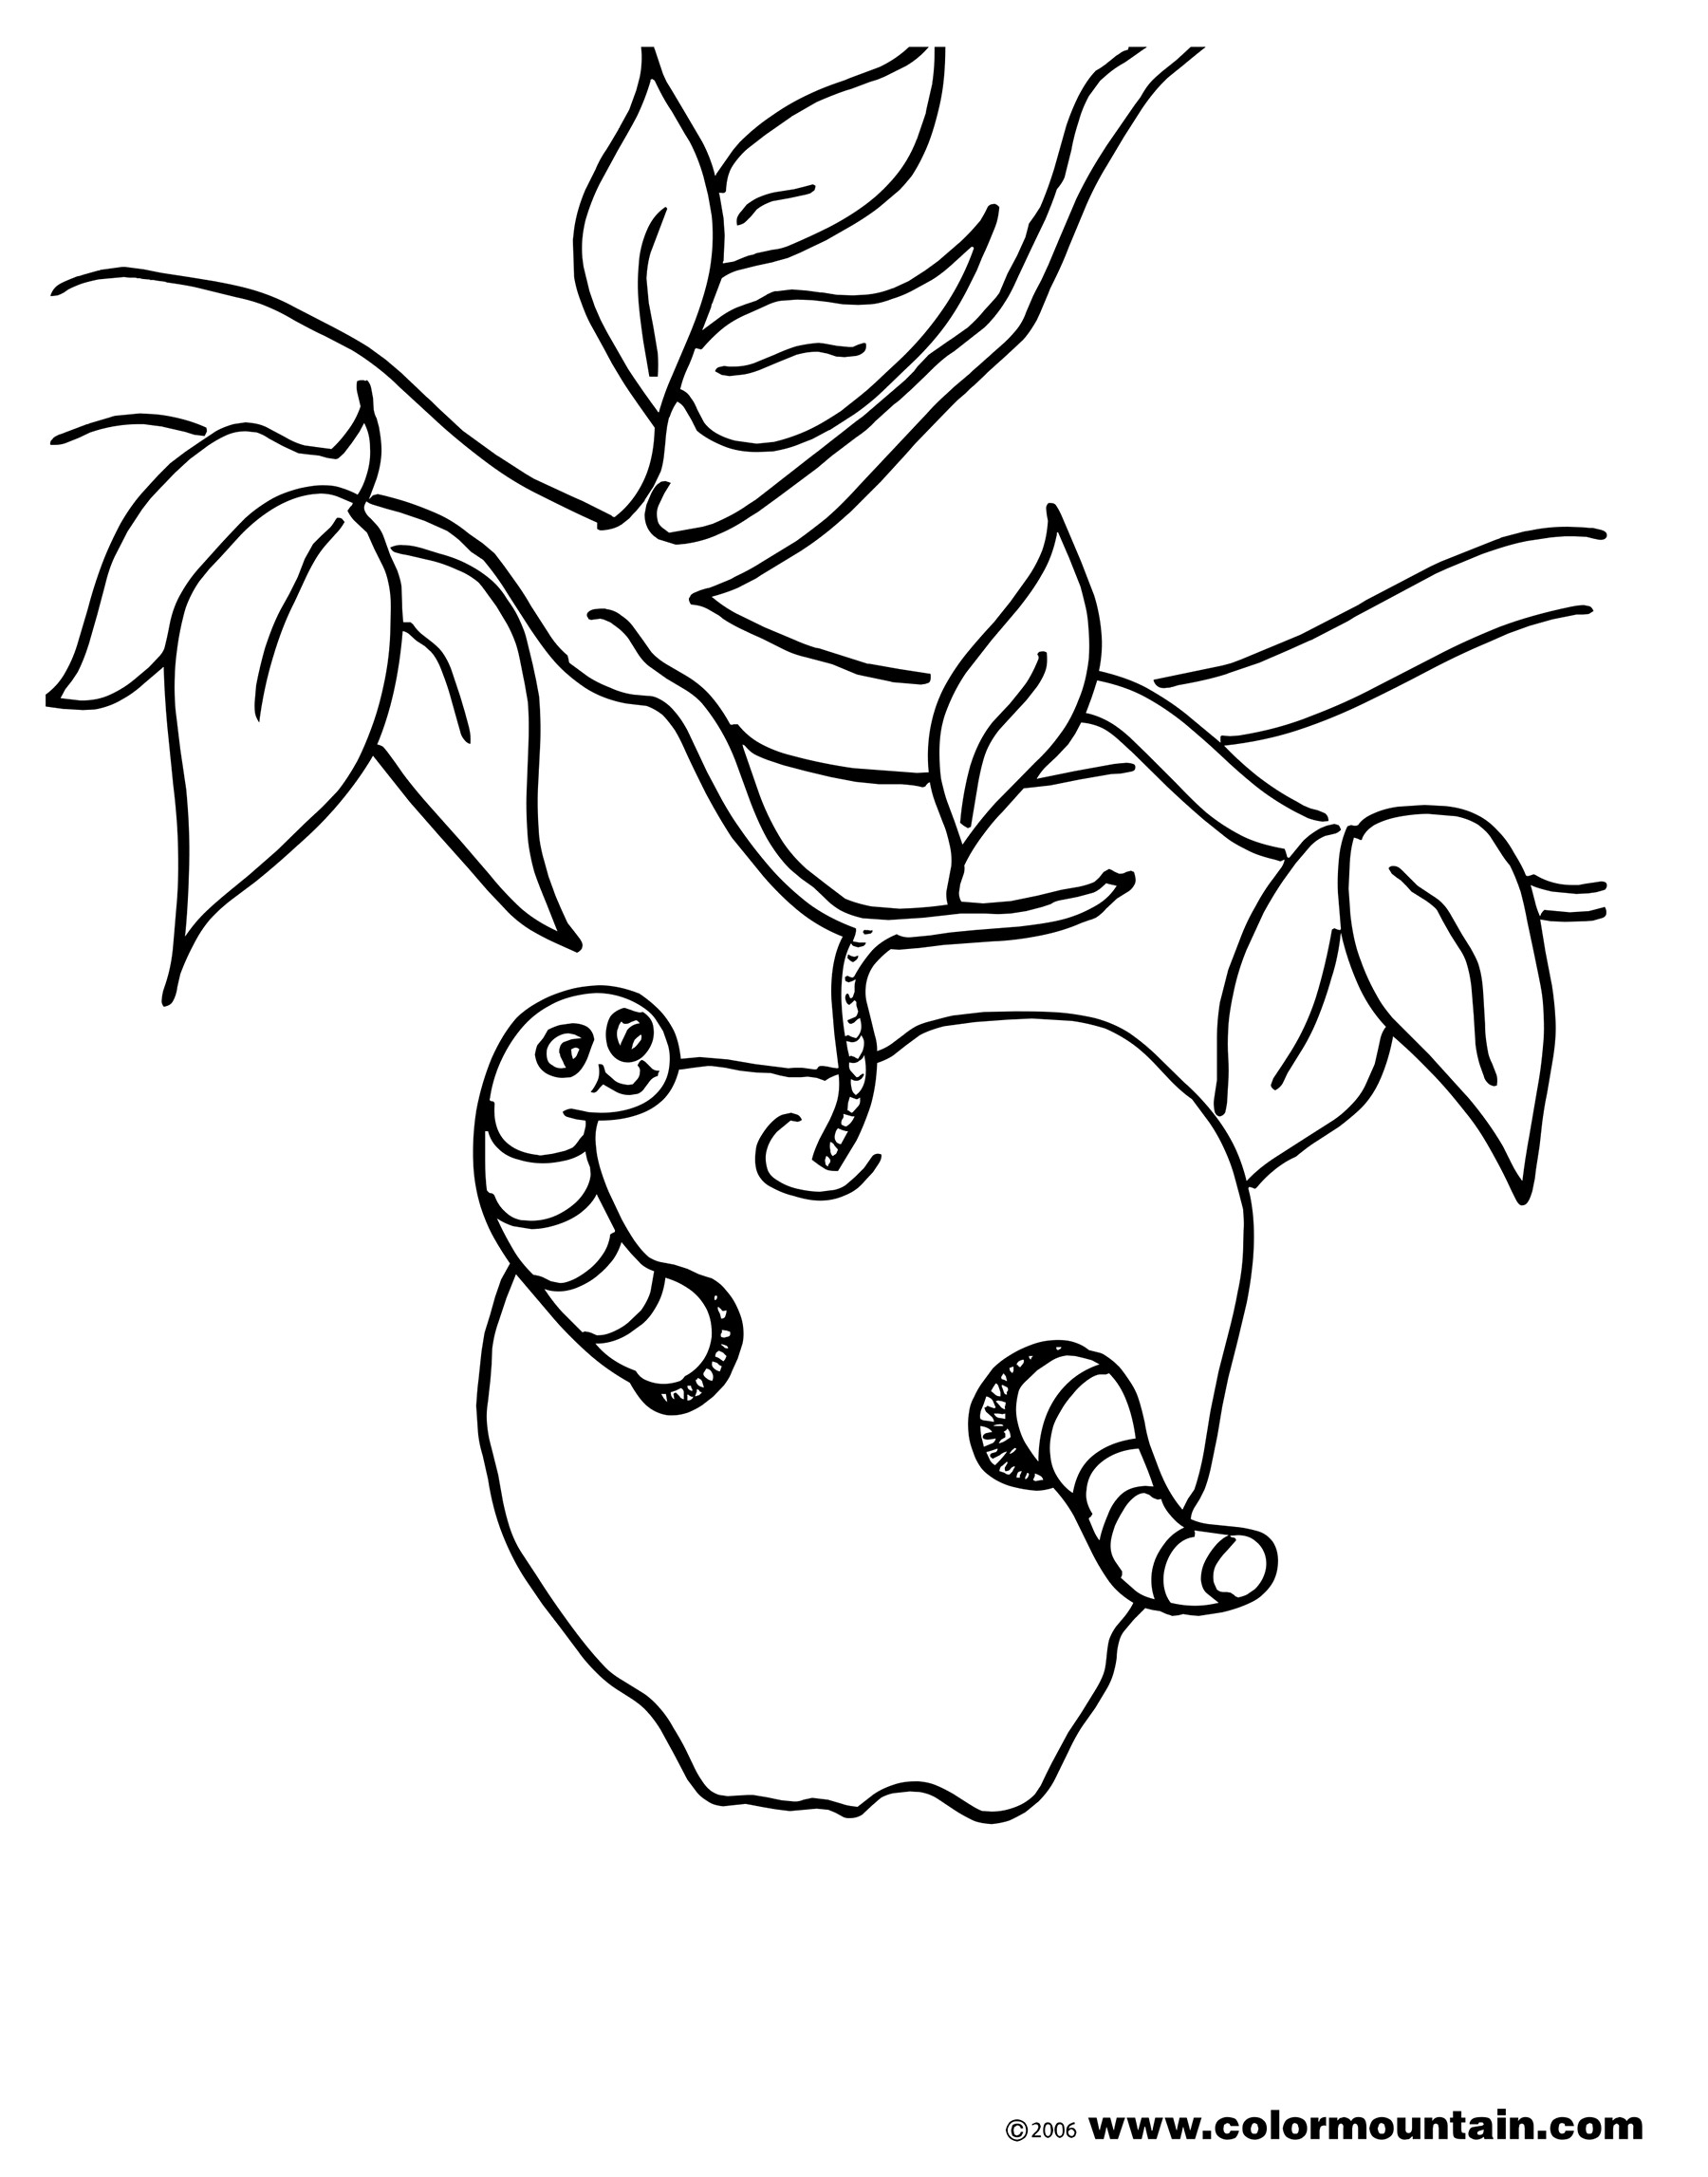 Clip Art Inch Worm Coloring Page Penty Photo